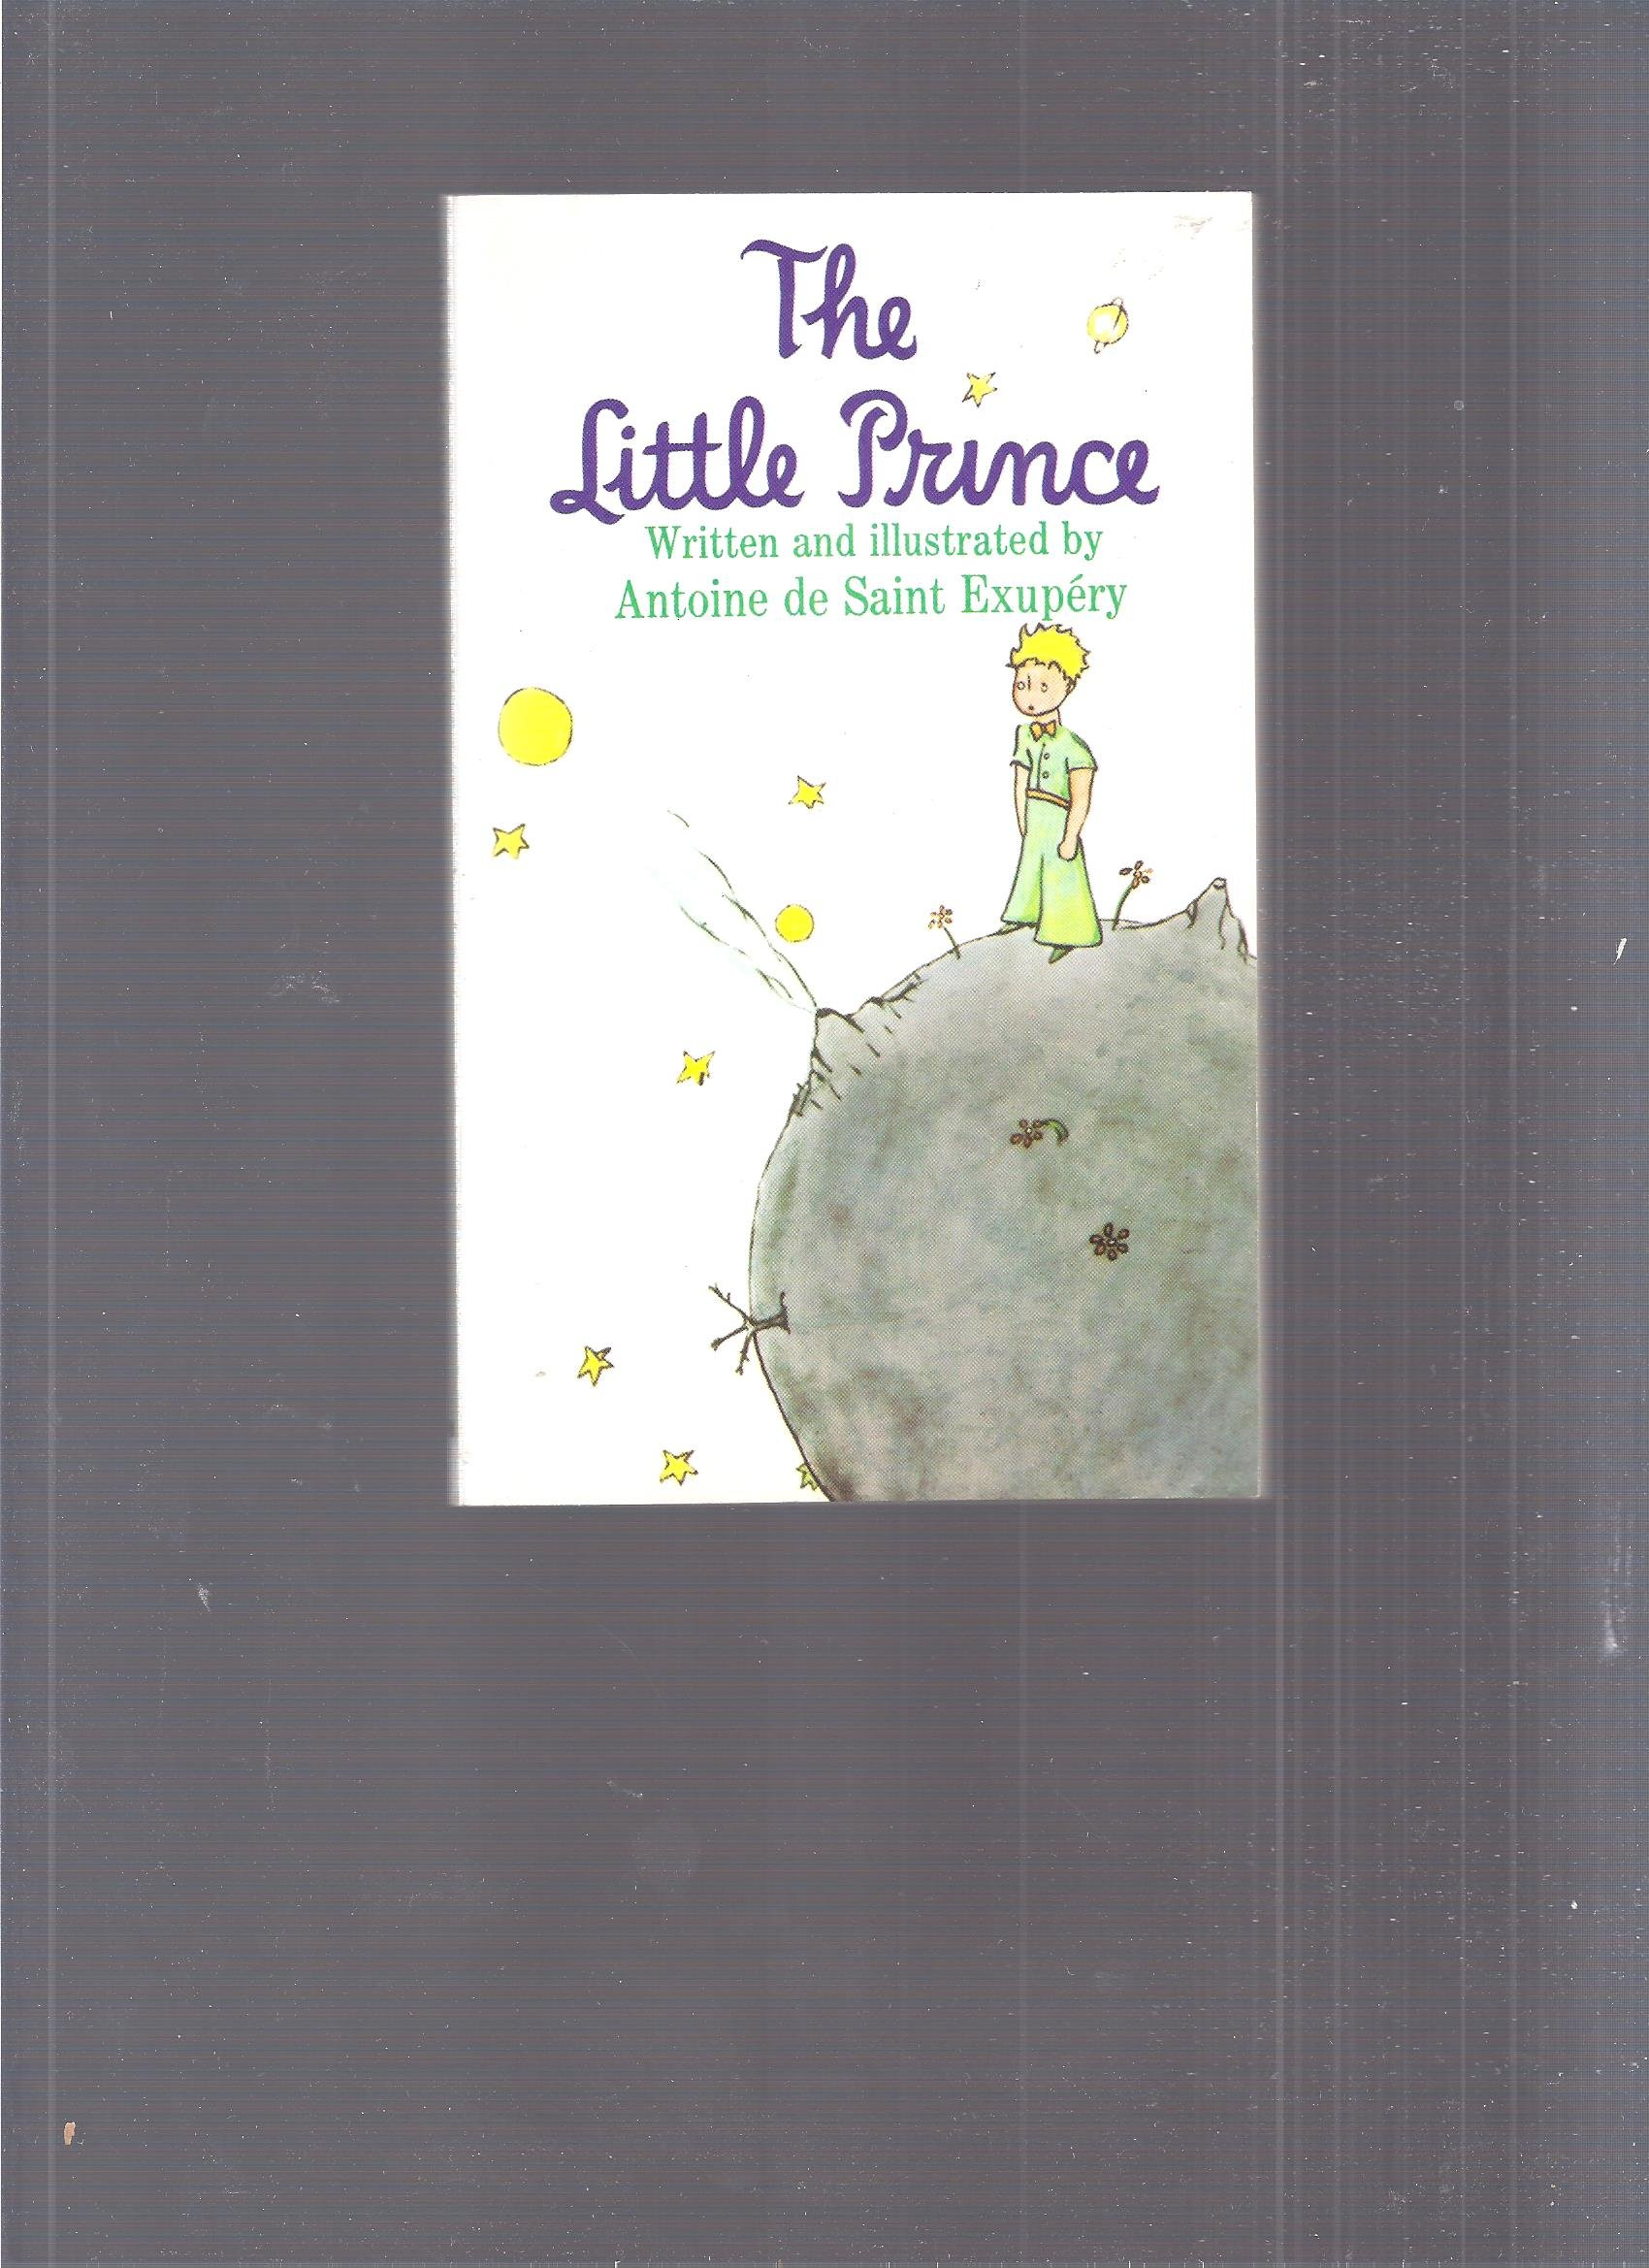 the little prince antoine de saint exupery amazon the little prince antoine de saint exupery 9780590129275 com books